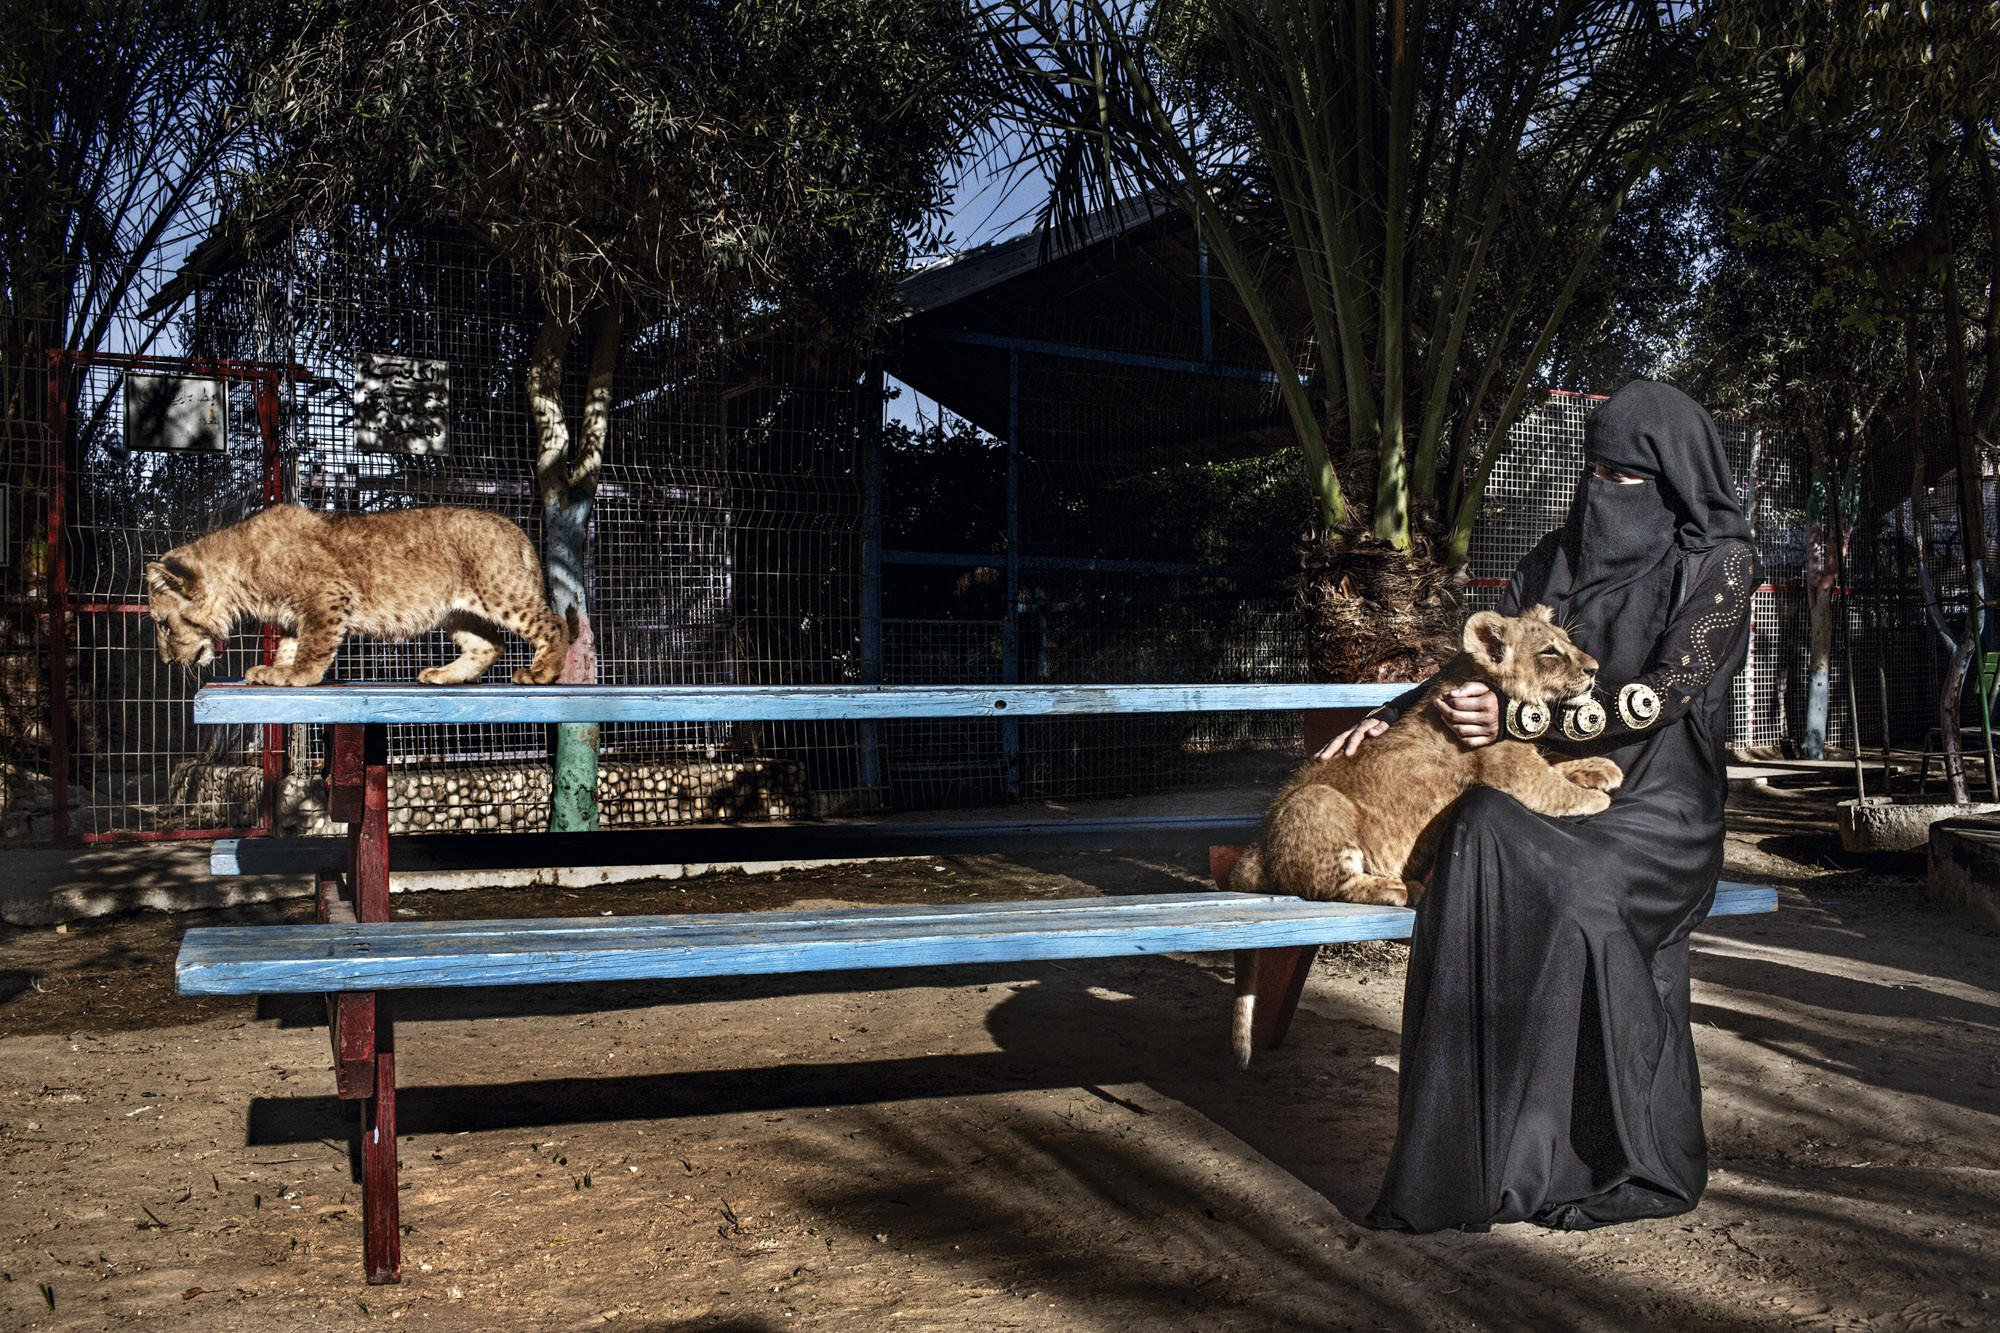 Occupied Palestinian Territories, Gaza, Rafah, 01 June 2013  A woman plays with two baby lion cubs born in the Rafah Zoo in Gaza.  Gazan Zoo keepers are renowned for creativity, faced with limited options; having famously painted a donkey as a zebra, smuggling in animals through the tunnels, and stuffing them once they are dead, as animals are difficult to replace.